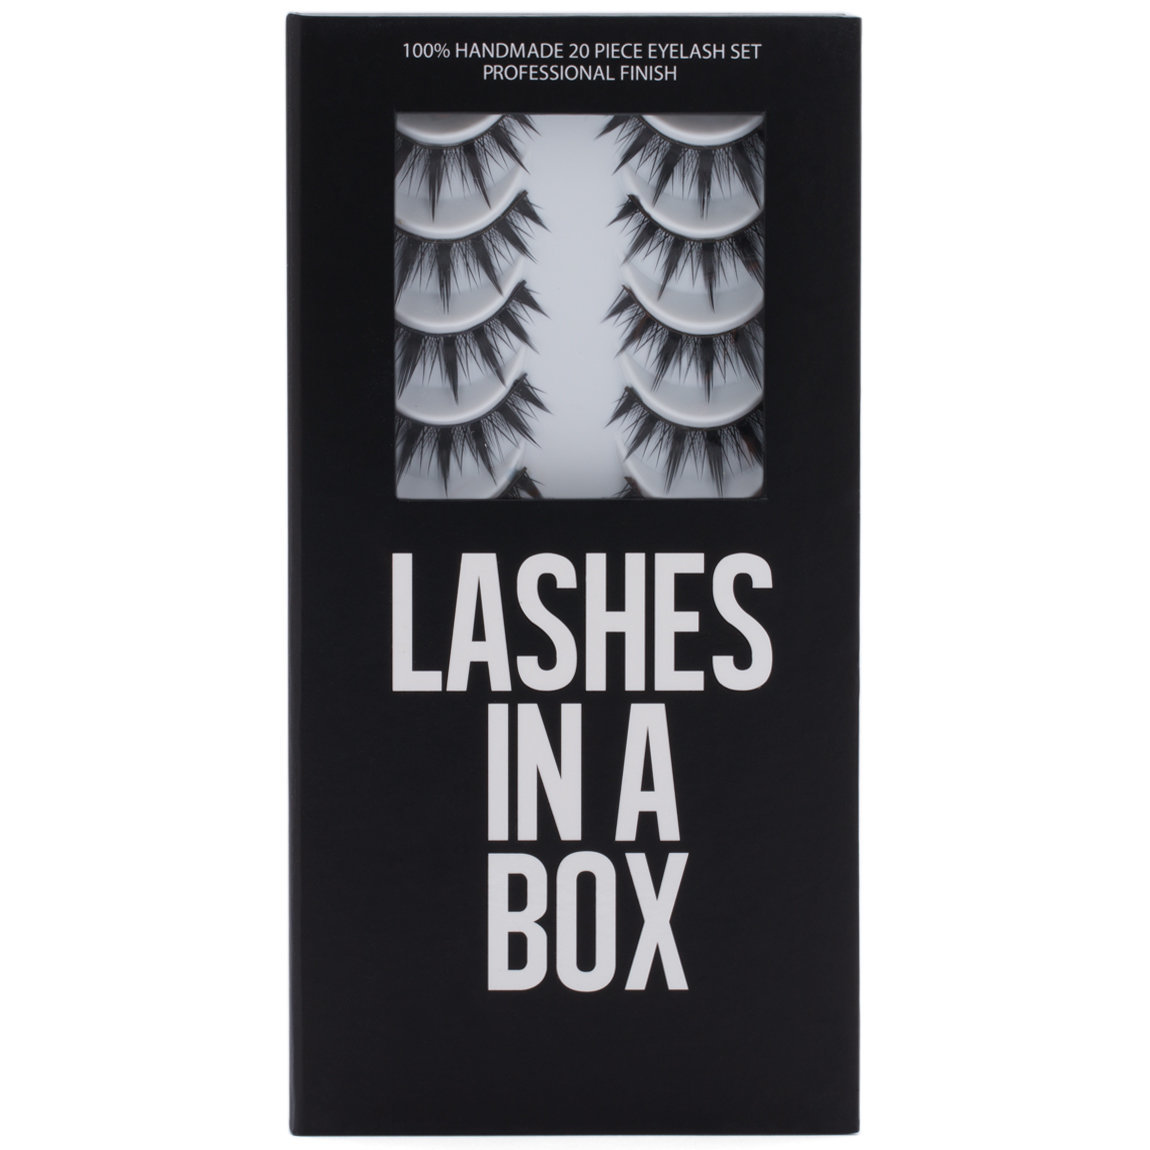 LASHES IN A BOX N°14 product swatch.